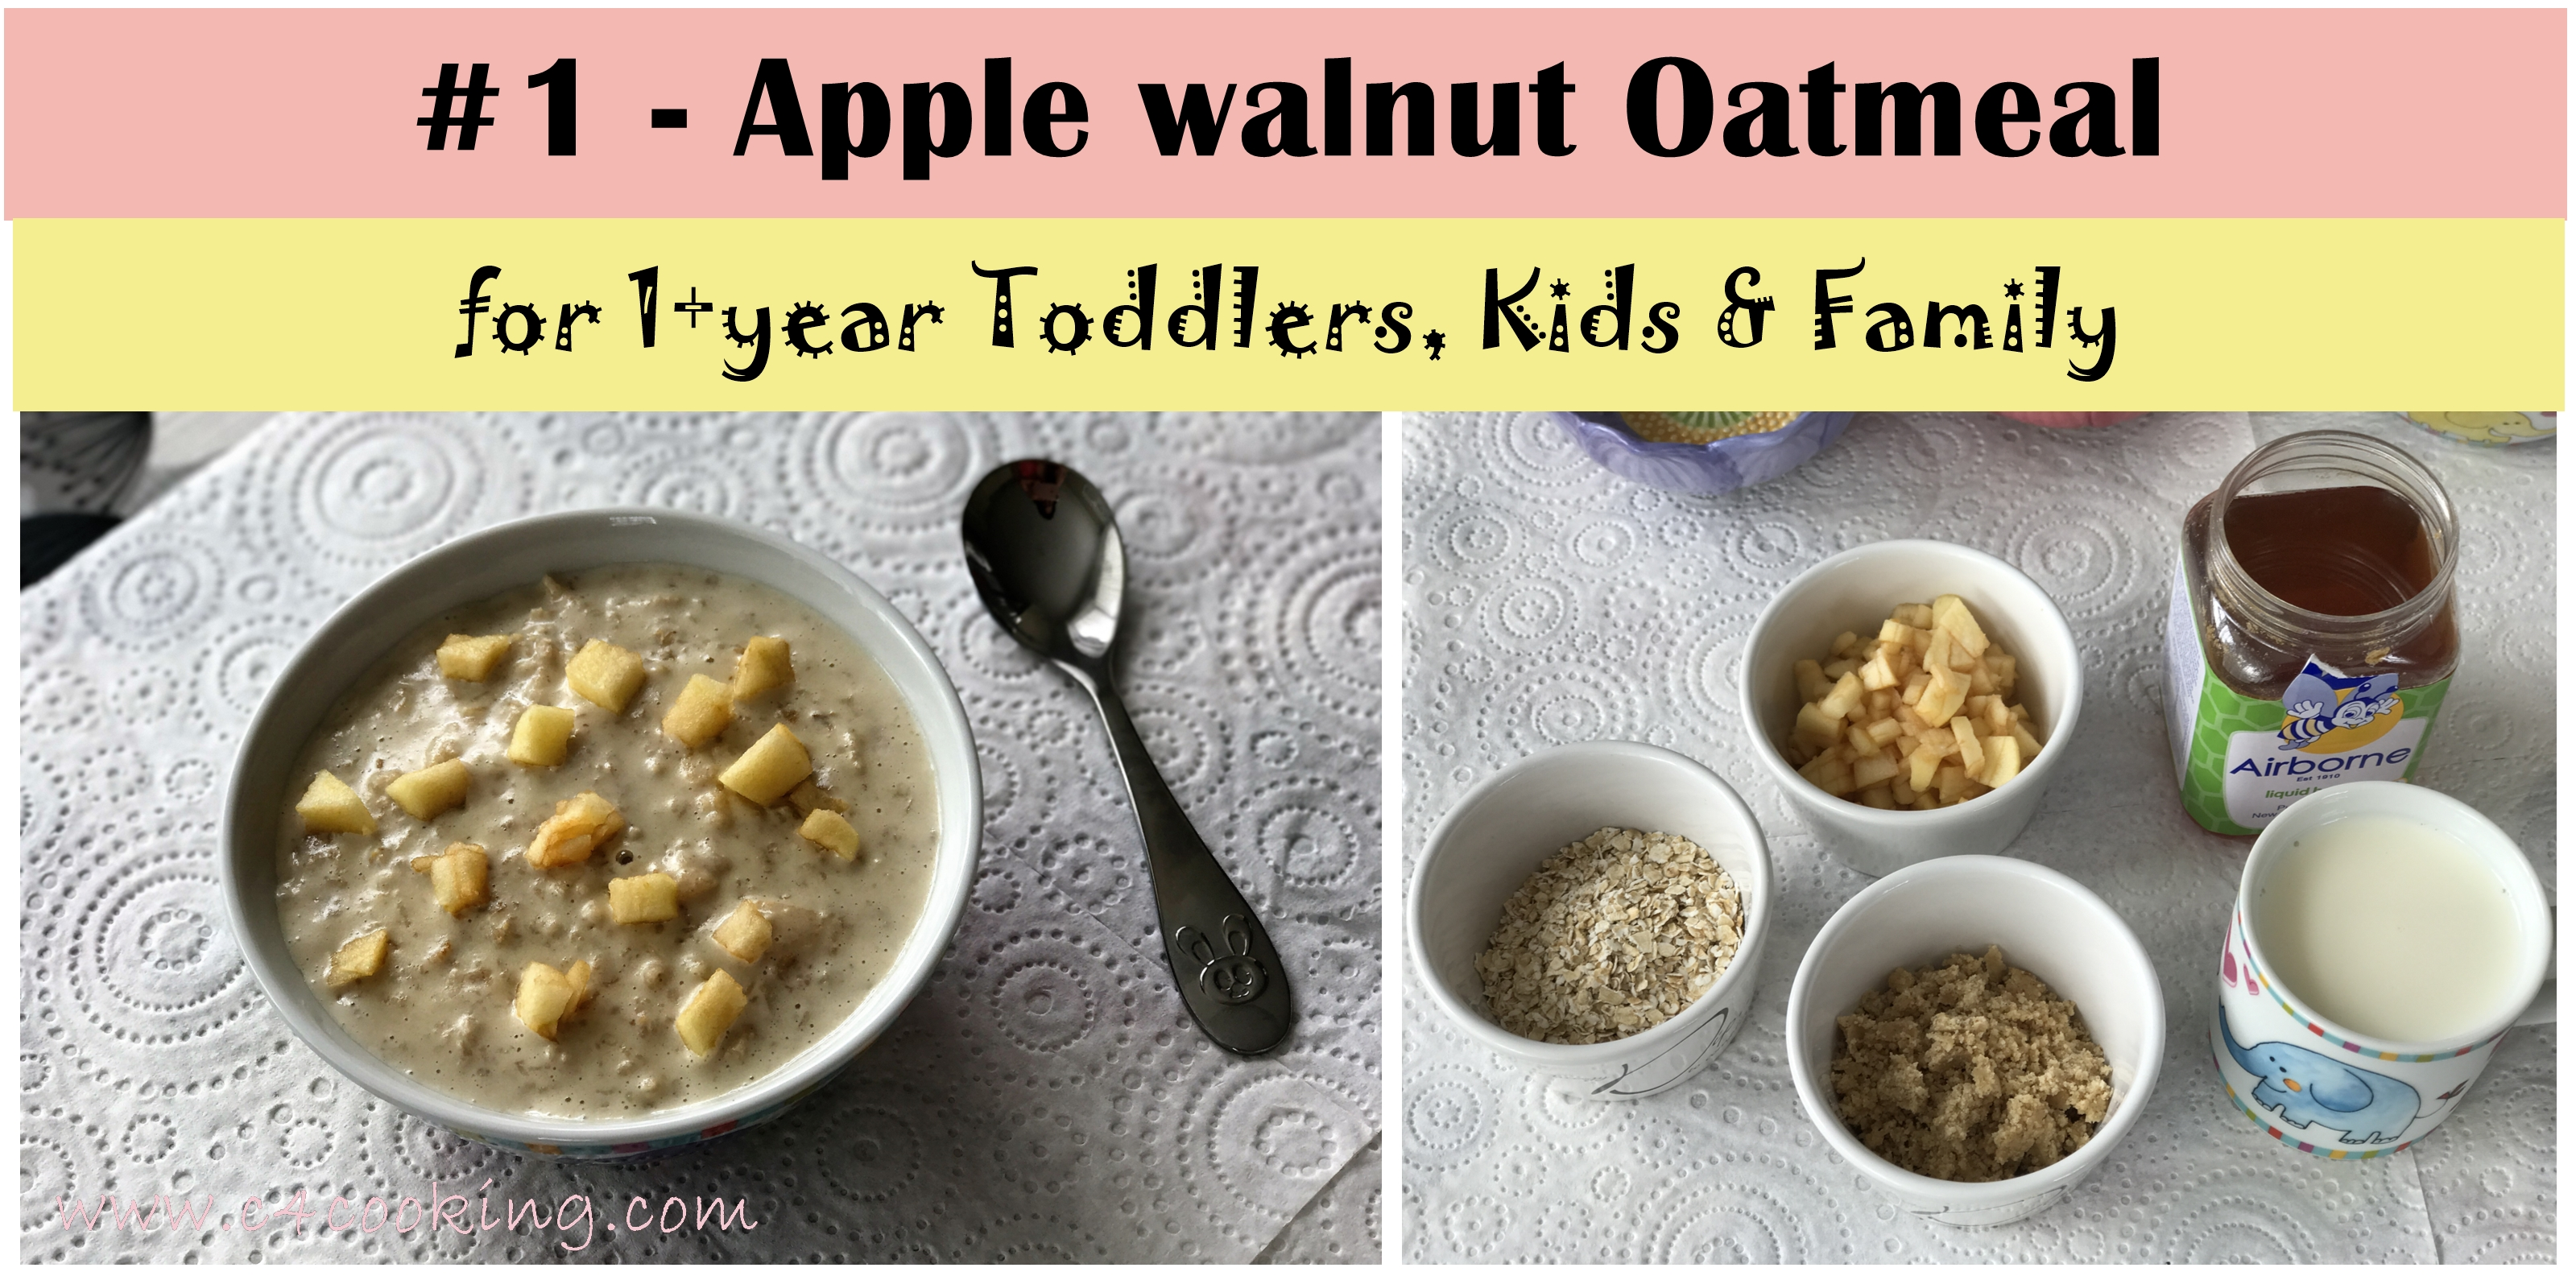 apple walnut oatmeal, toddler oatmeal recipe